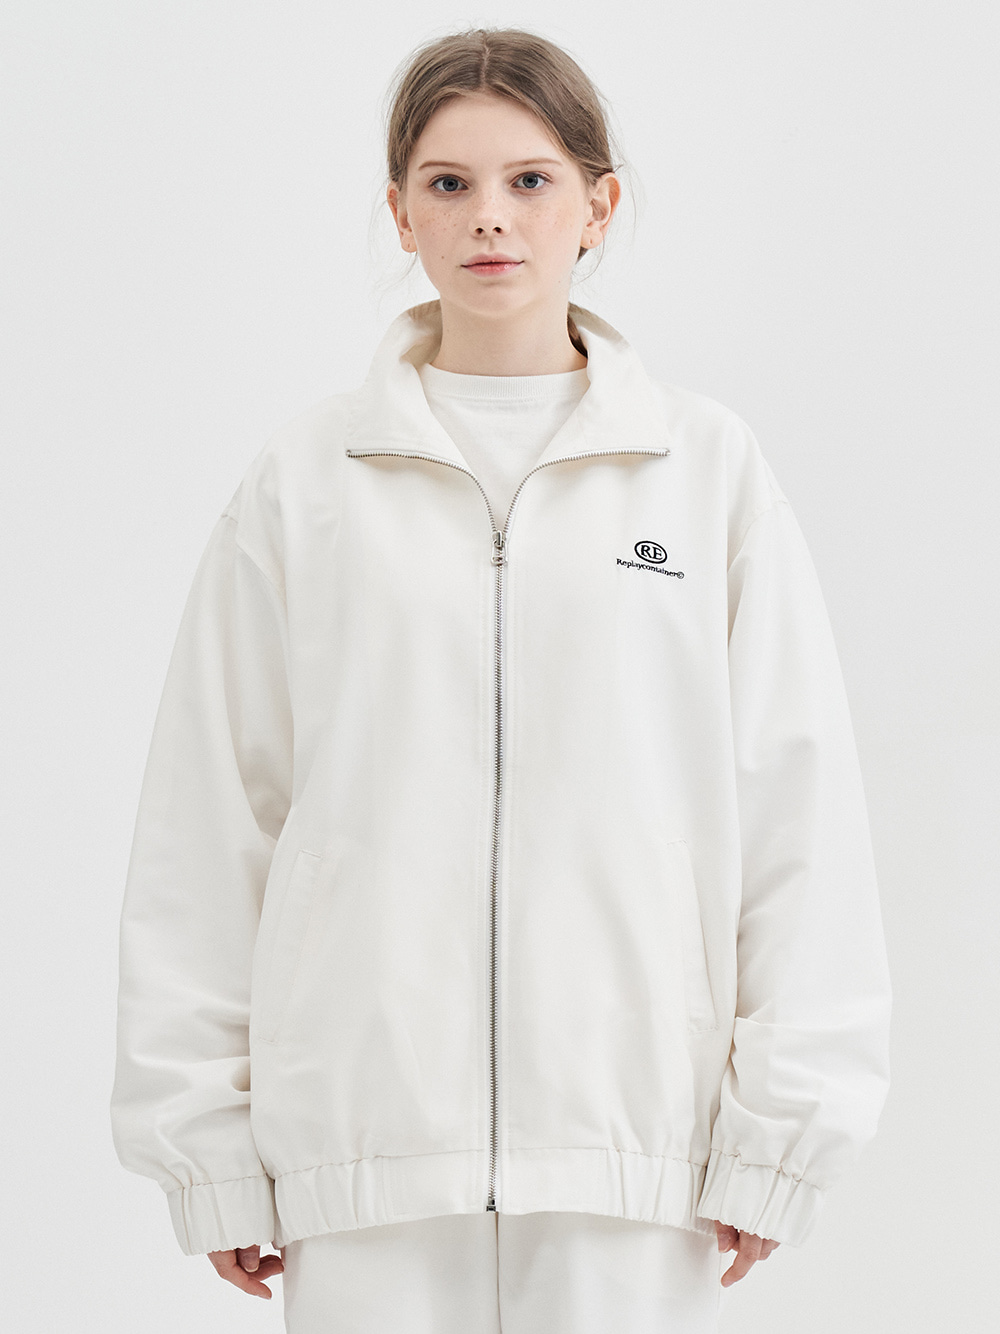 RE capsule logo track jacket (white)